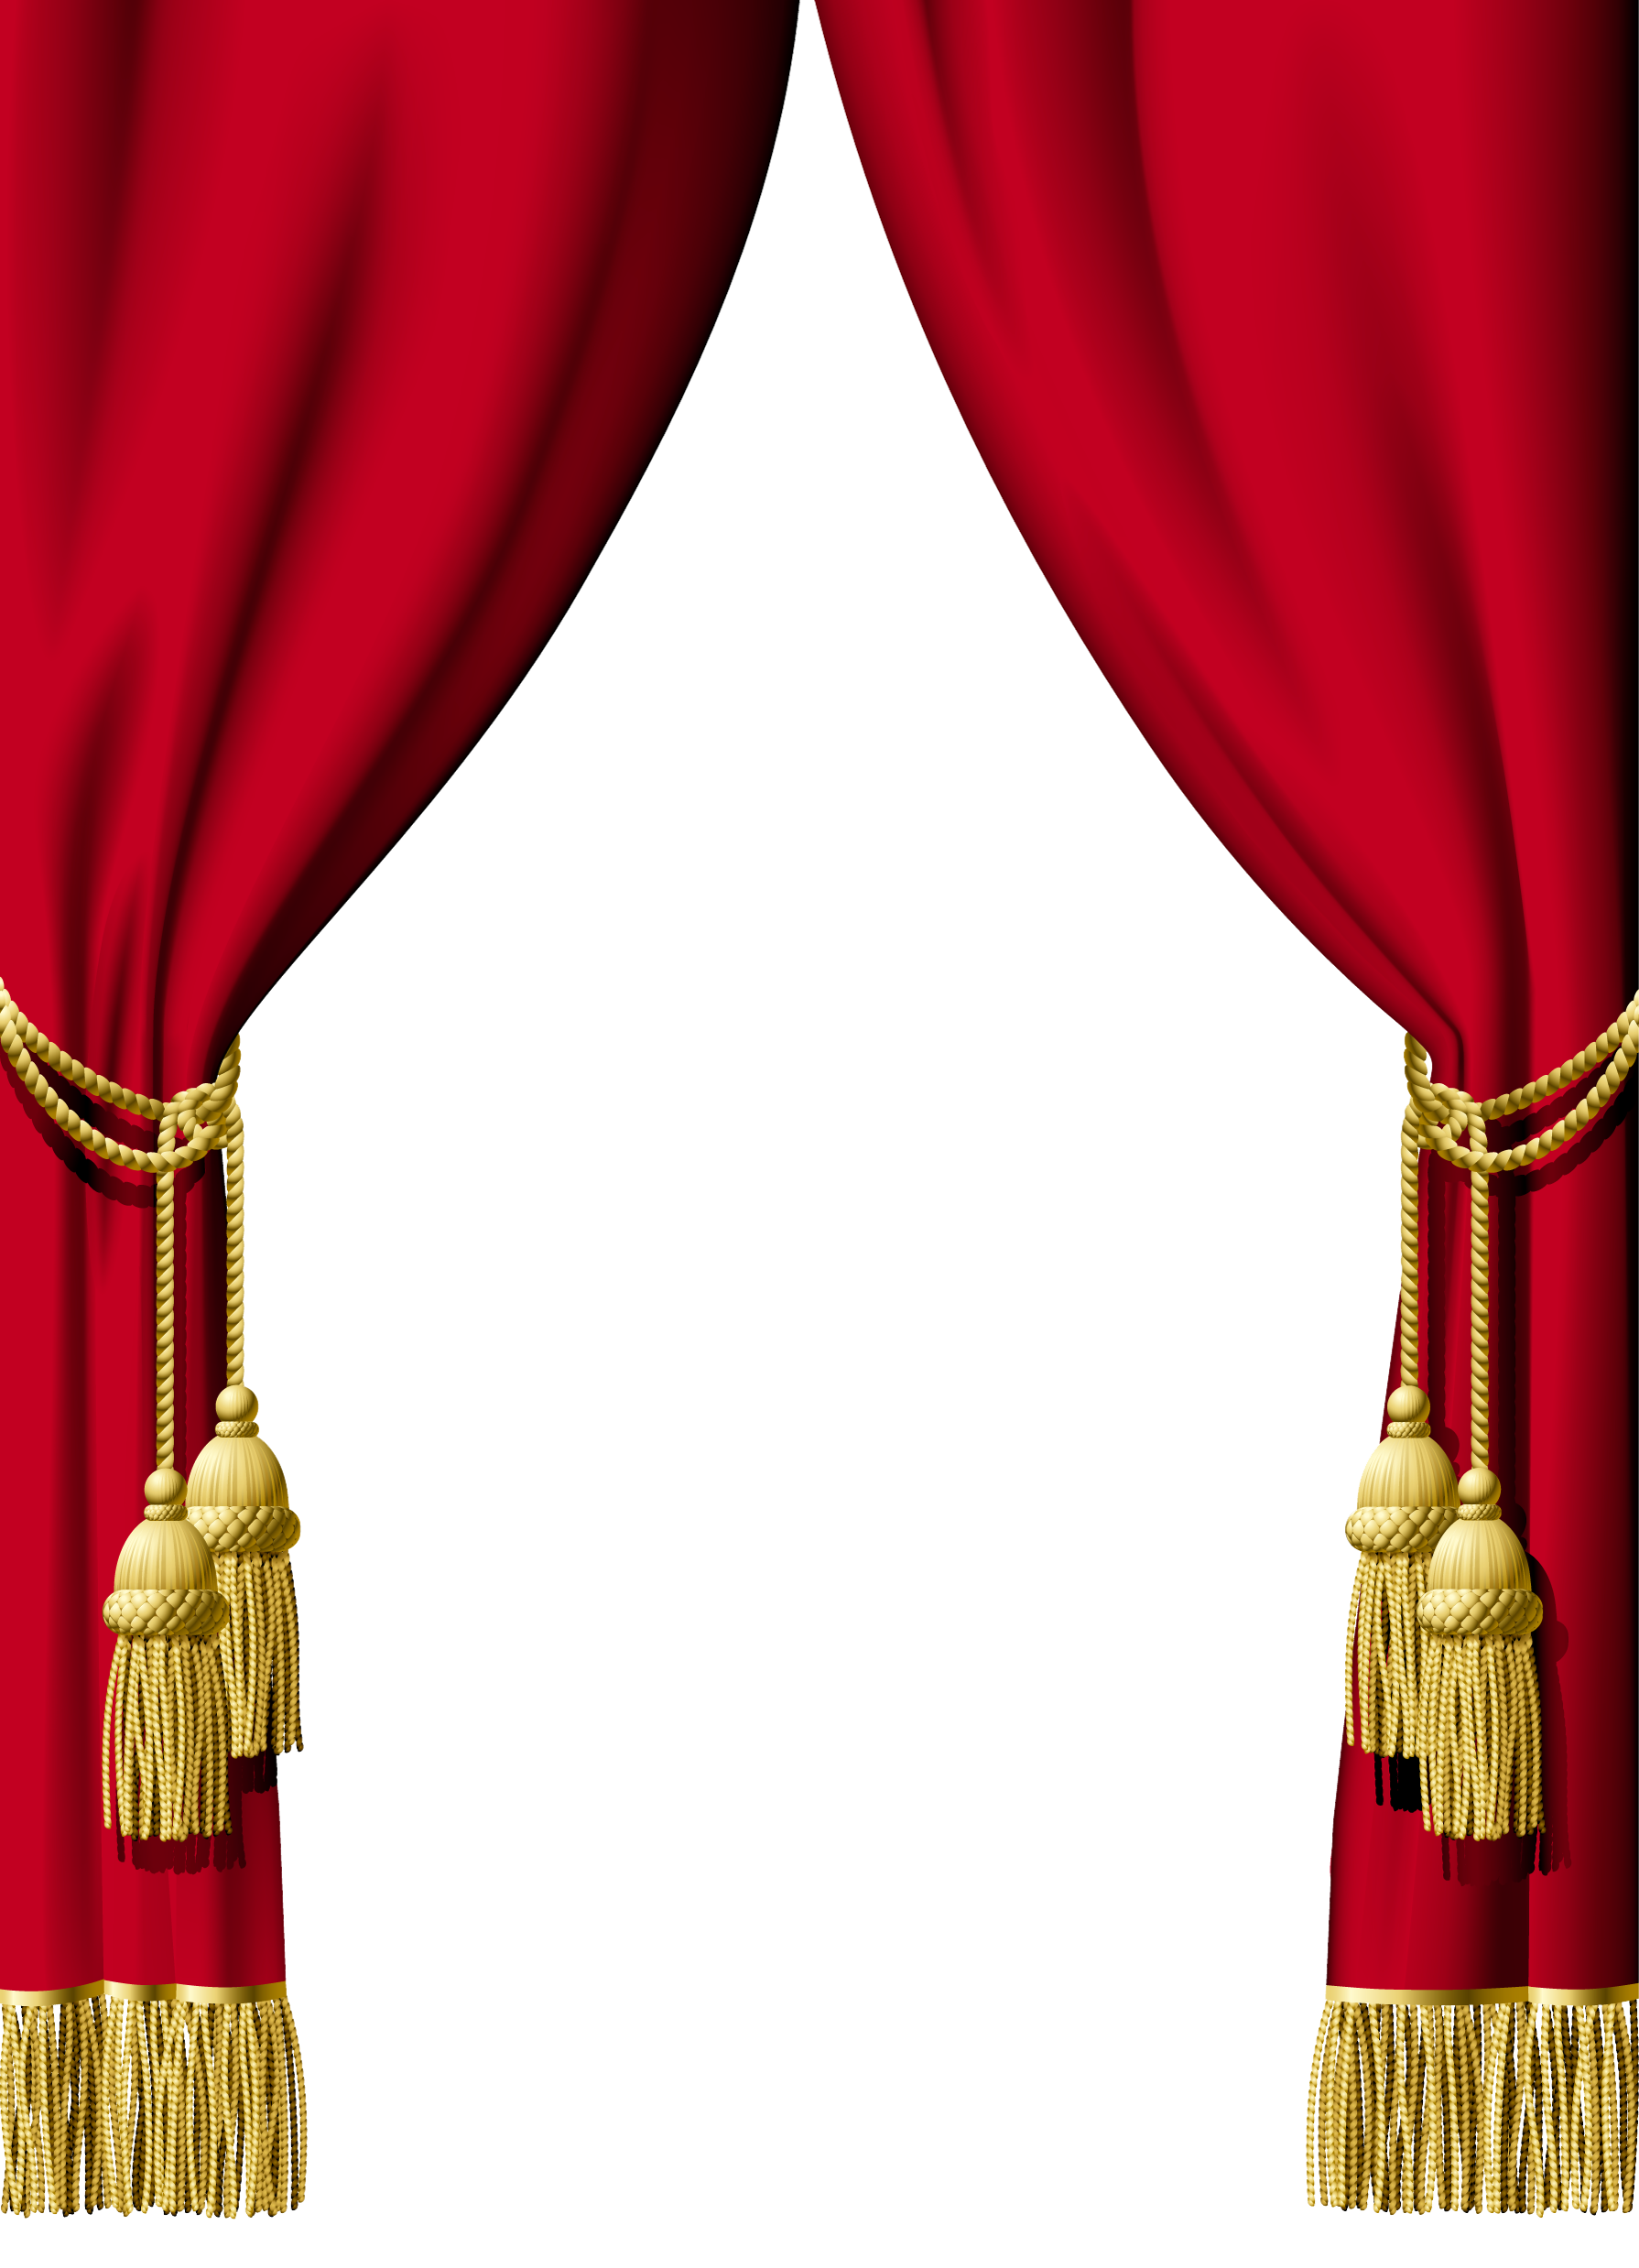 Curtain HD PNG